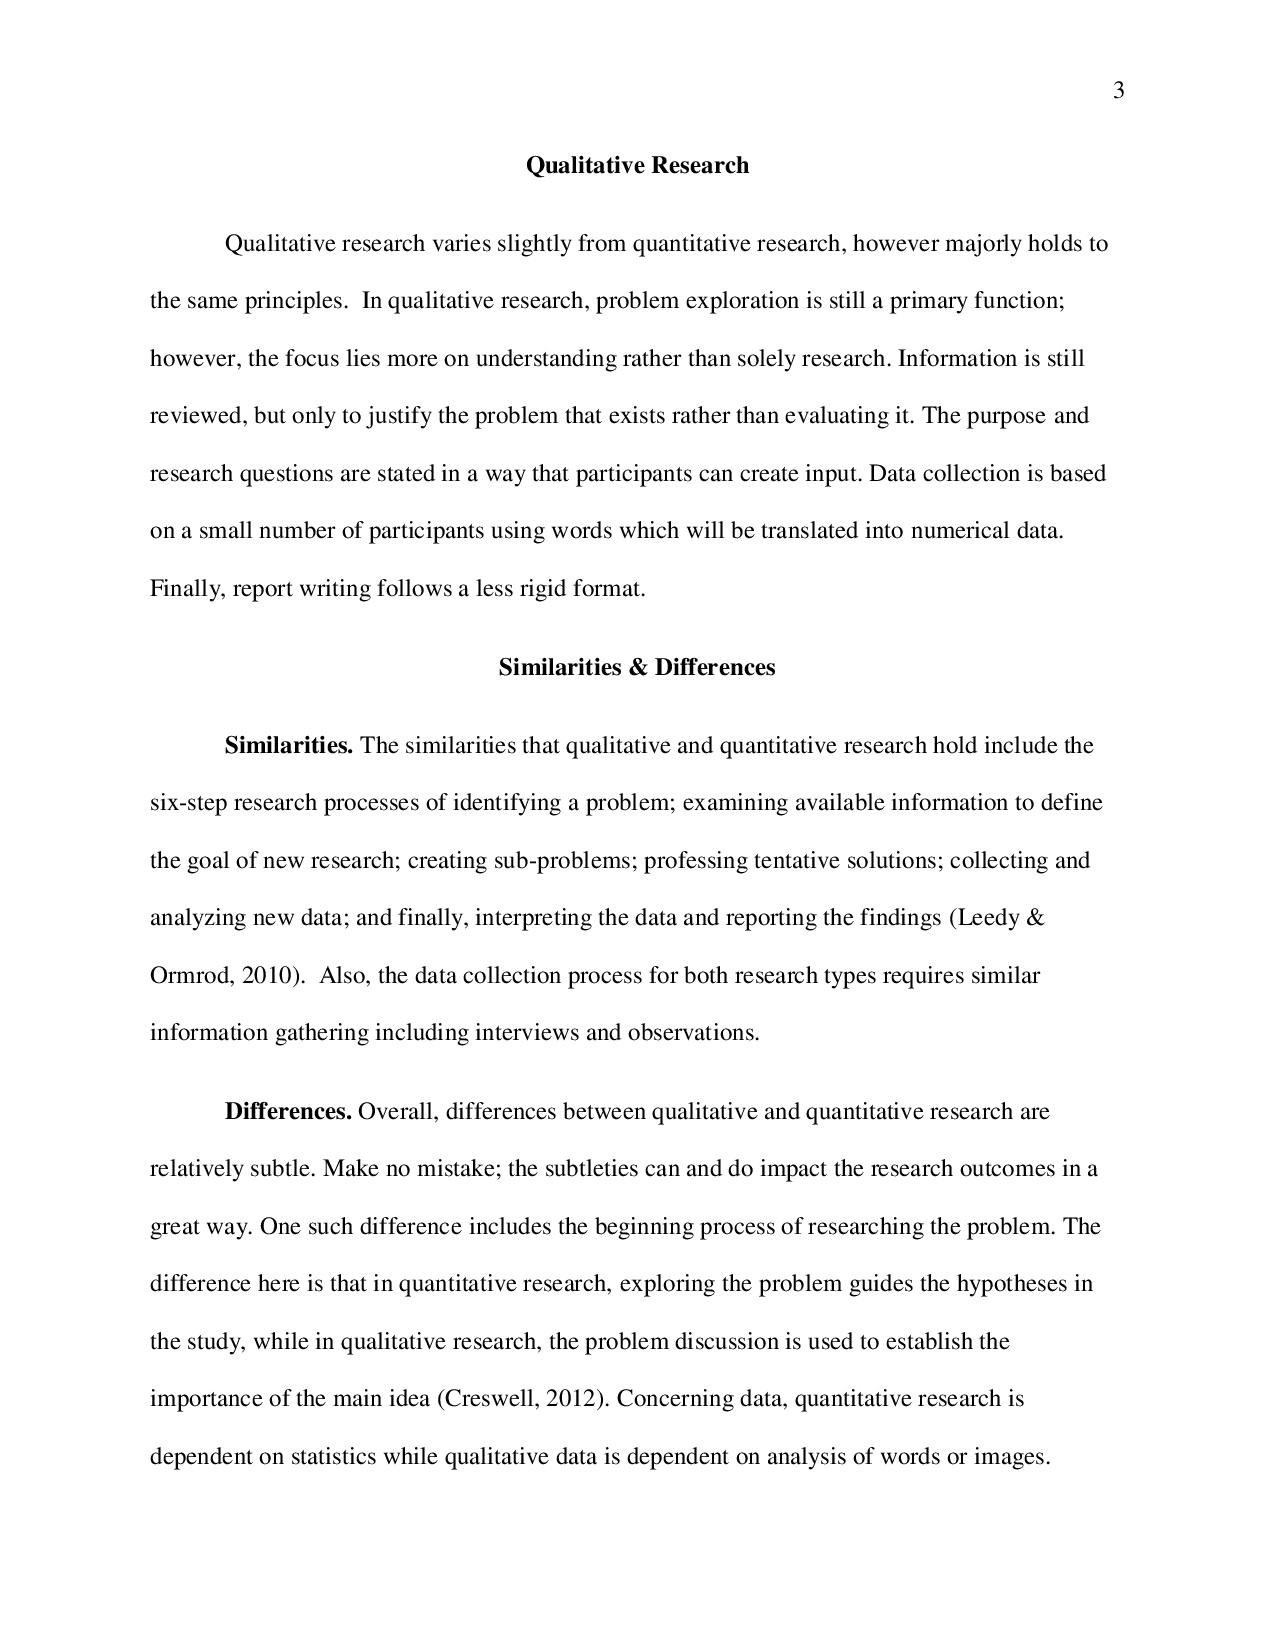 writing a qualitative research paper How do i find an apa qualitative research paper sample how hard is it for you to get a research paper sample on the apa format when you are supposed to write a qualitative essay.